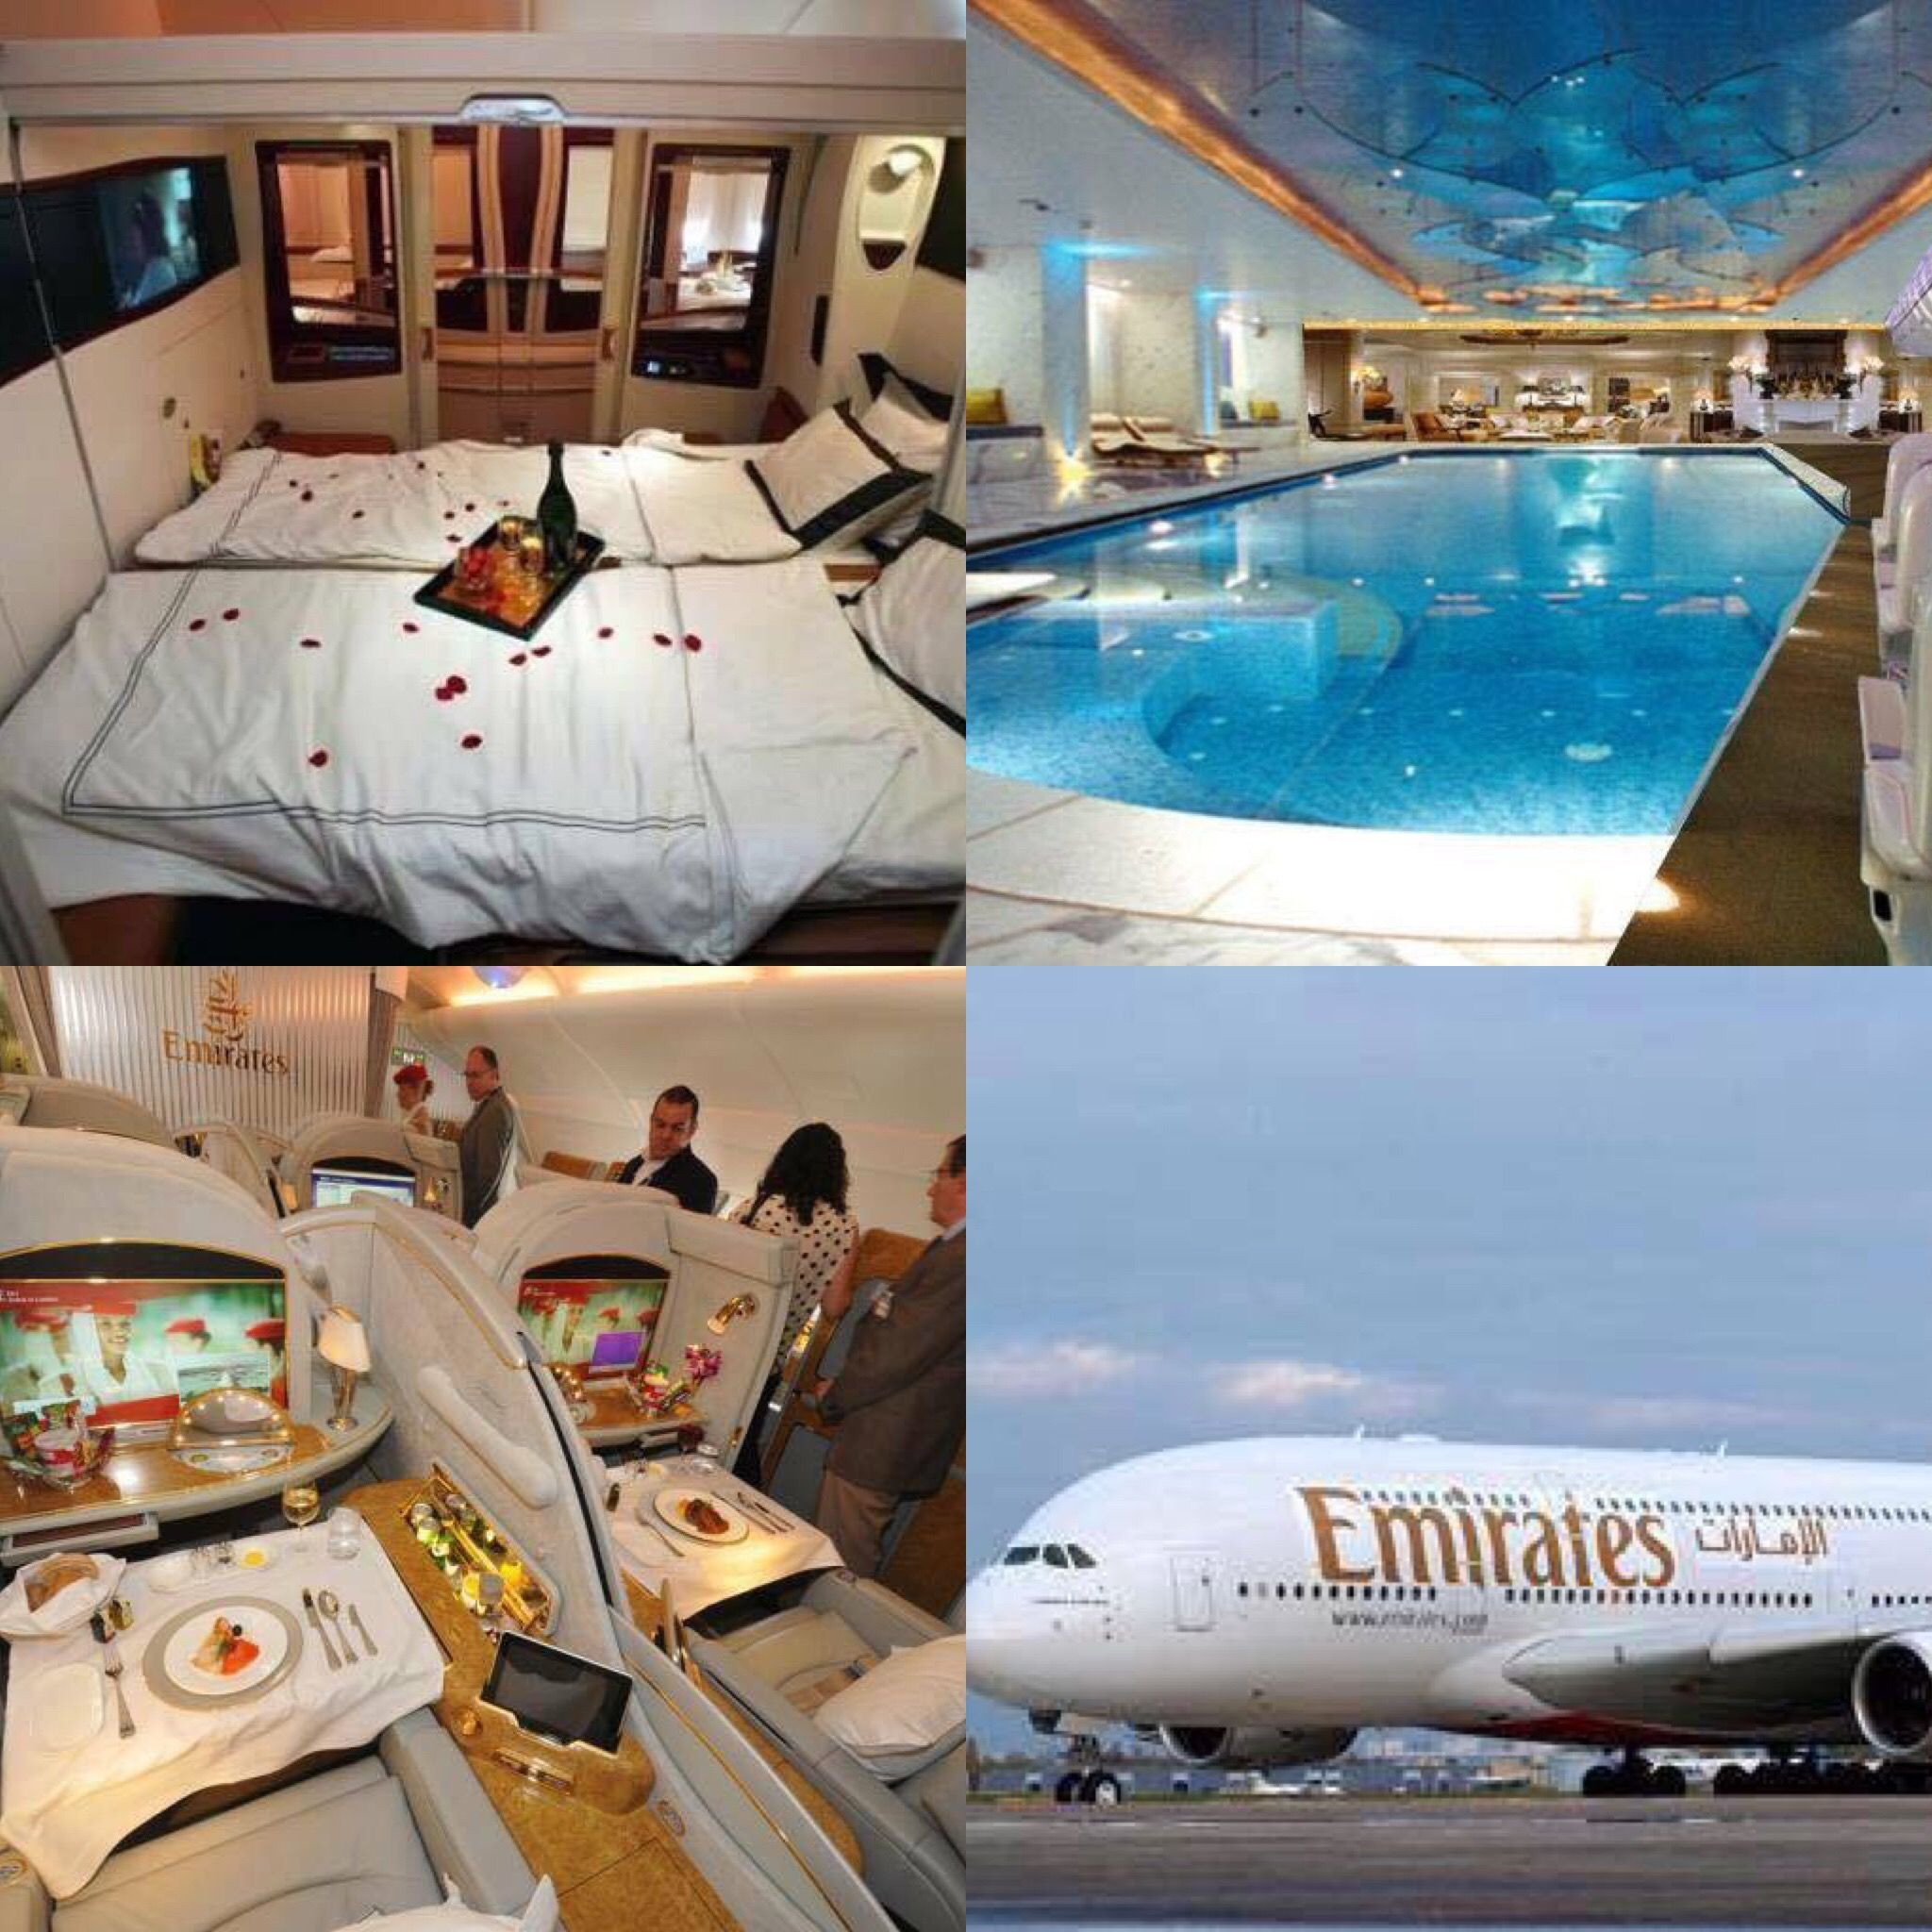 New Emirates Airlines 380 Has 500 Seats And A Room For Two Persons And Also Has Swimming Pool Swimming Pools Pool Emirates Airline